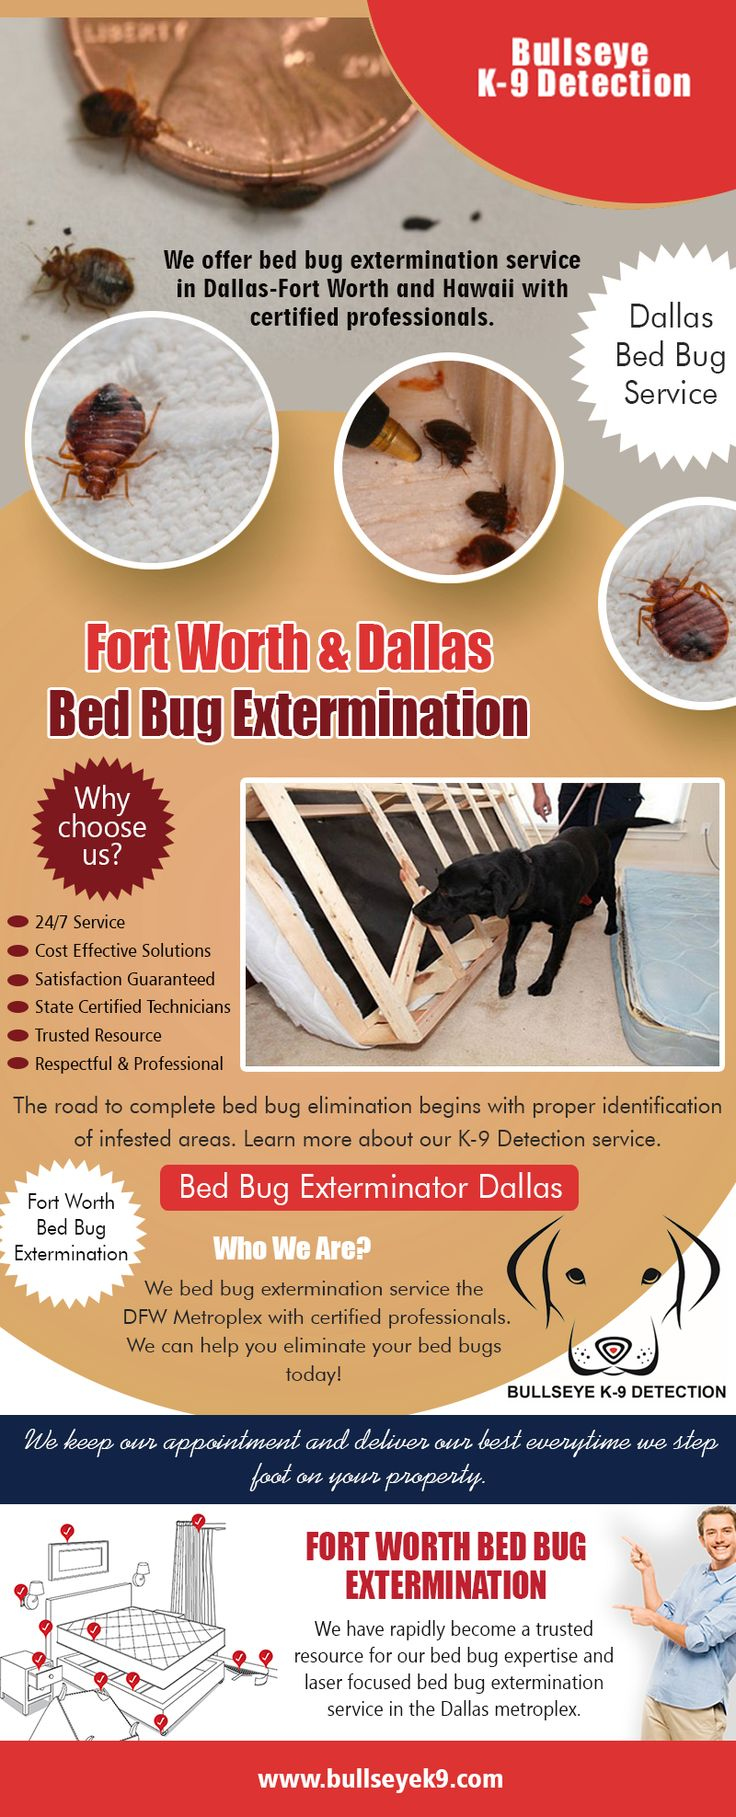 Fort Worth & Dallas Bed Bug Extermination Bed bug